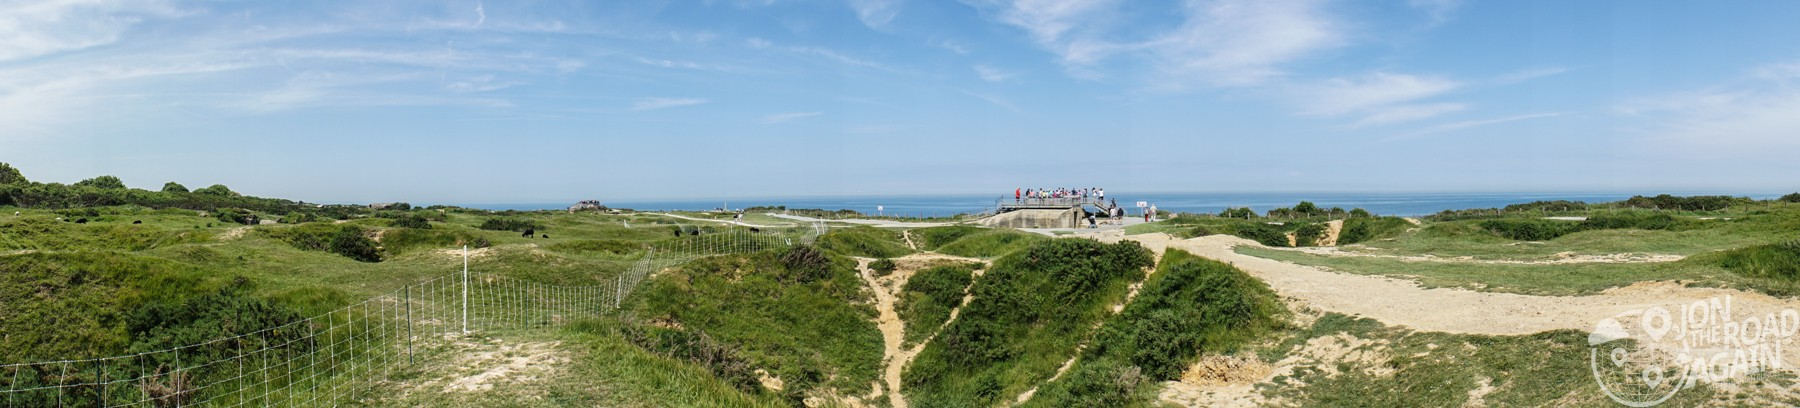 Pointe du Hoc panorama